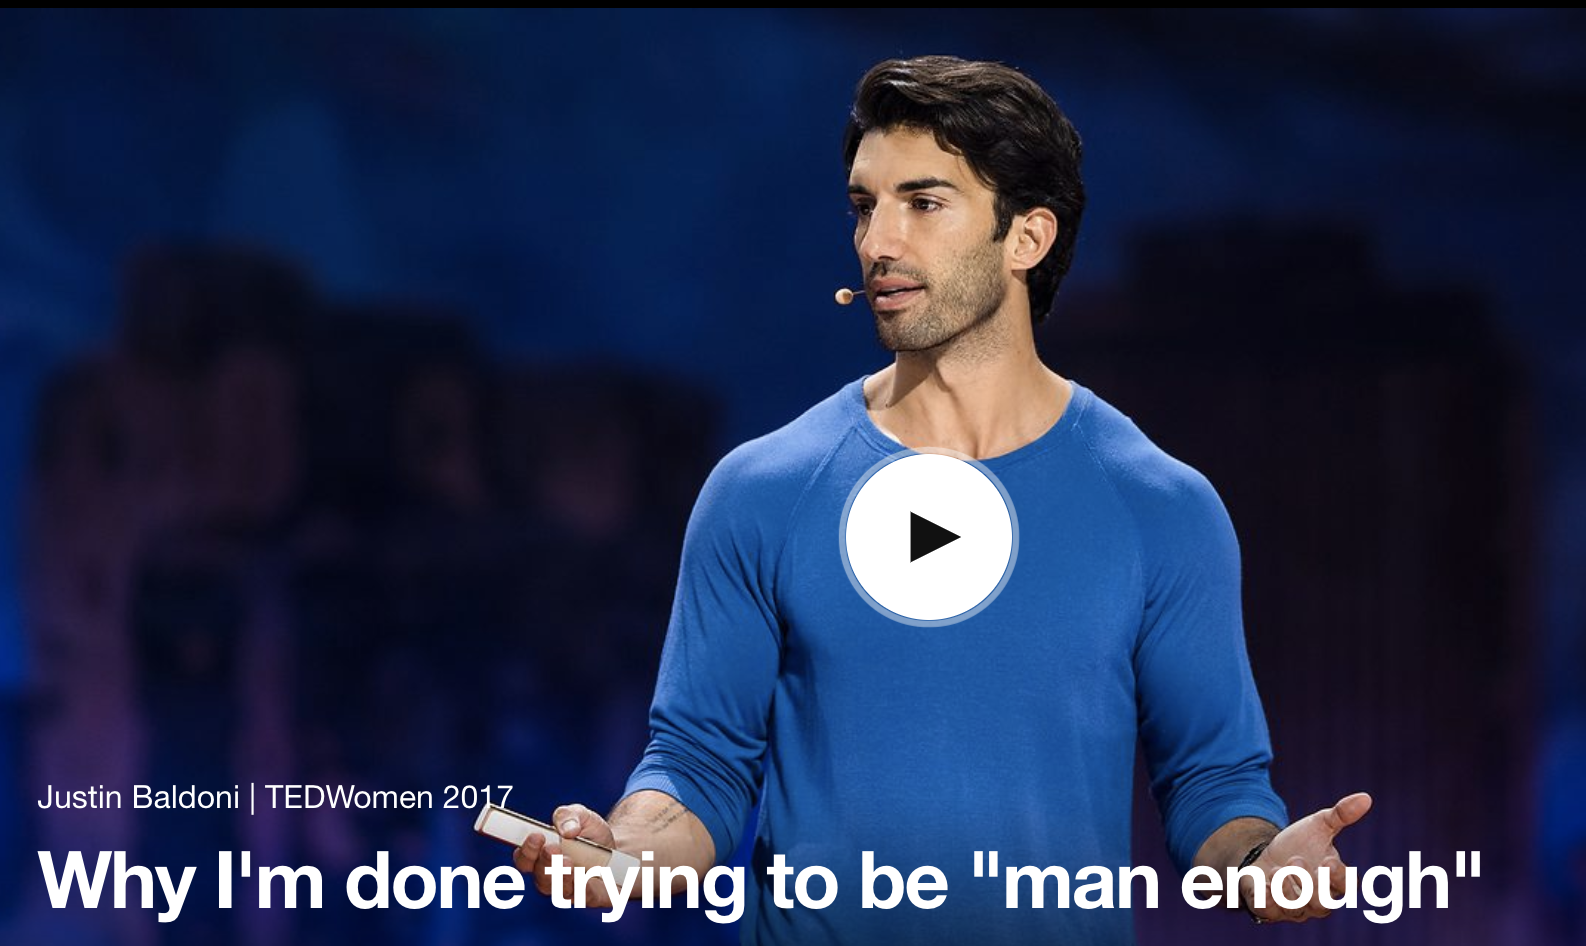 """4. TED Talk - """"Why I'm done trying to be man enough"""" Justin Baldoni"""